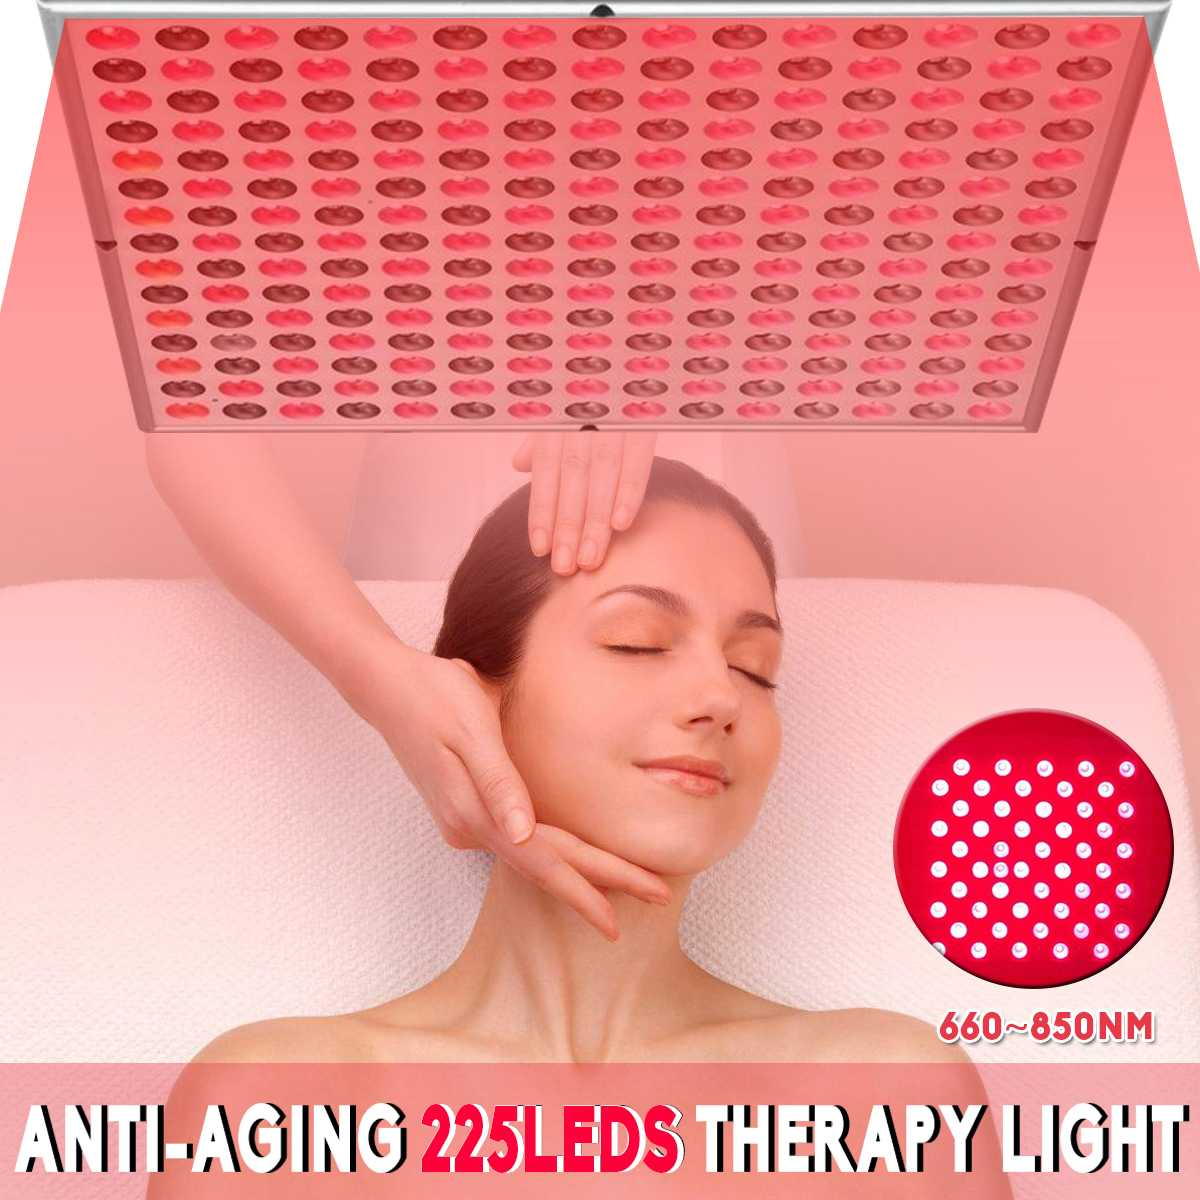 NEW Anti Aging 45W Red Led Light Therapy Deep Red 660nm And Near Infrared 850nm Led Light For Full Body Skin And Pain Relie